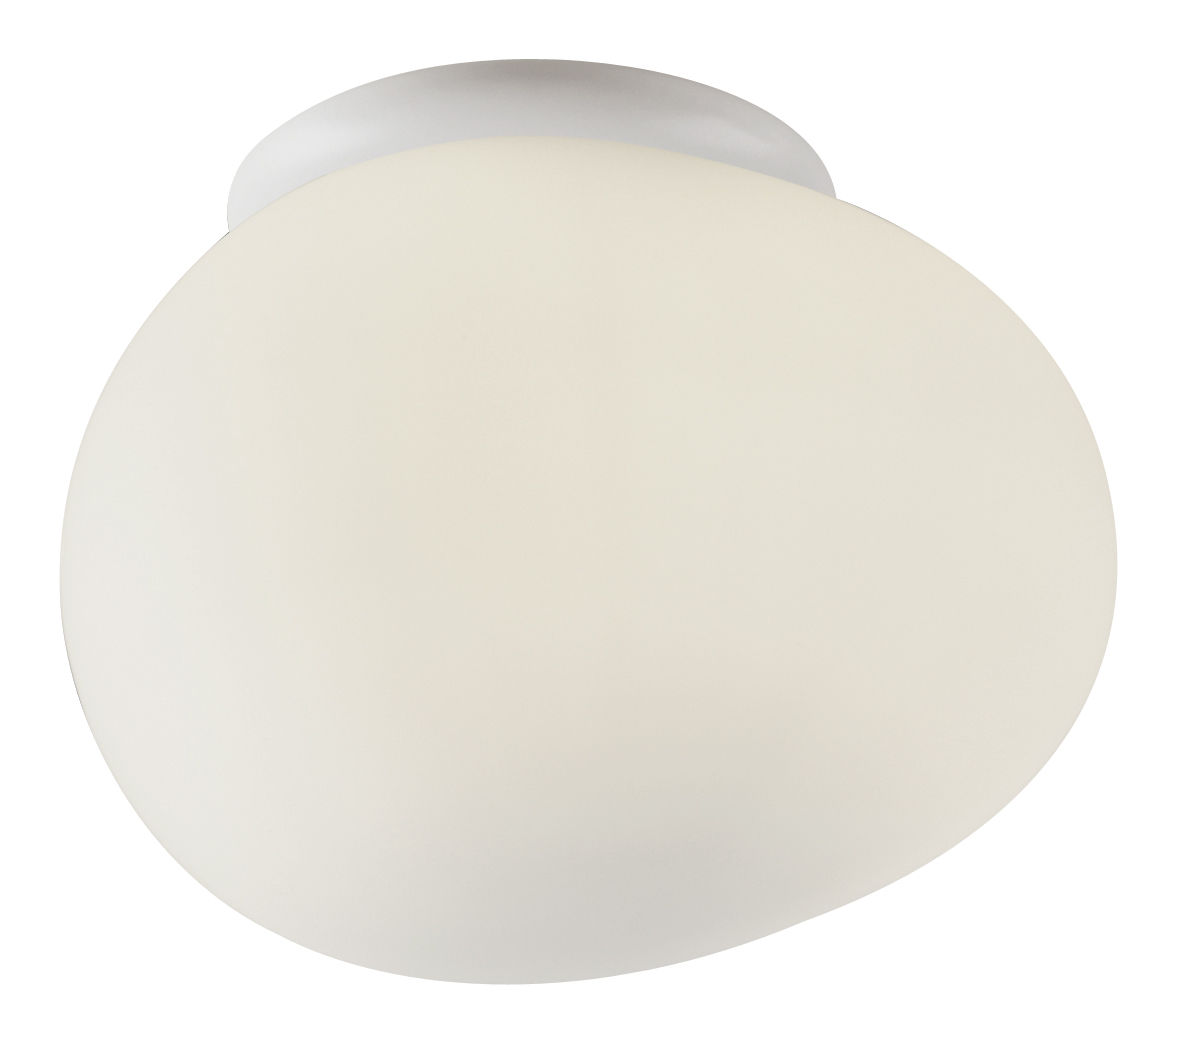 Lighting - Wall Lights - Gregg Piccola Wall light - Ceiling light by Foscarini - White - Piccola (L 13 cm) - Blown glass